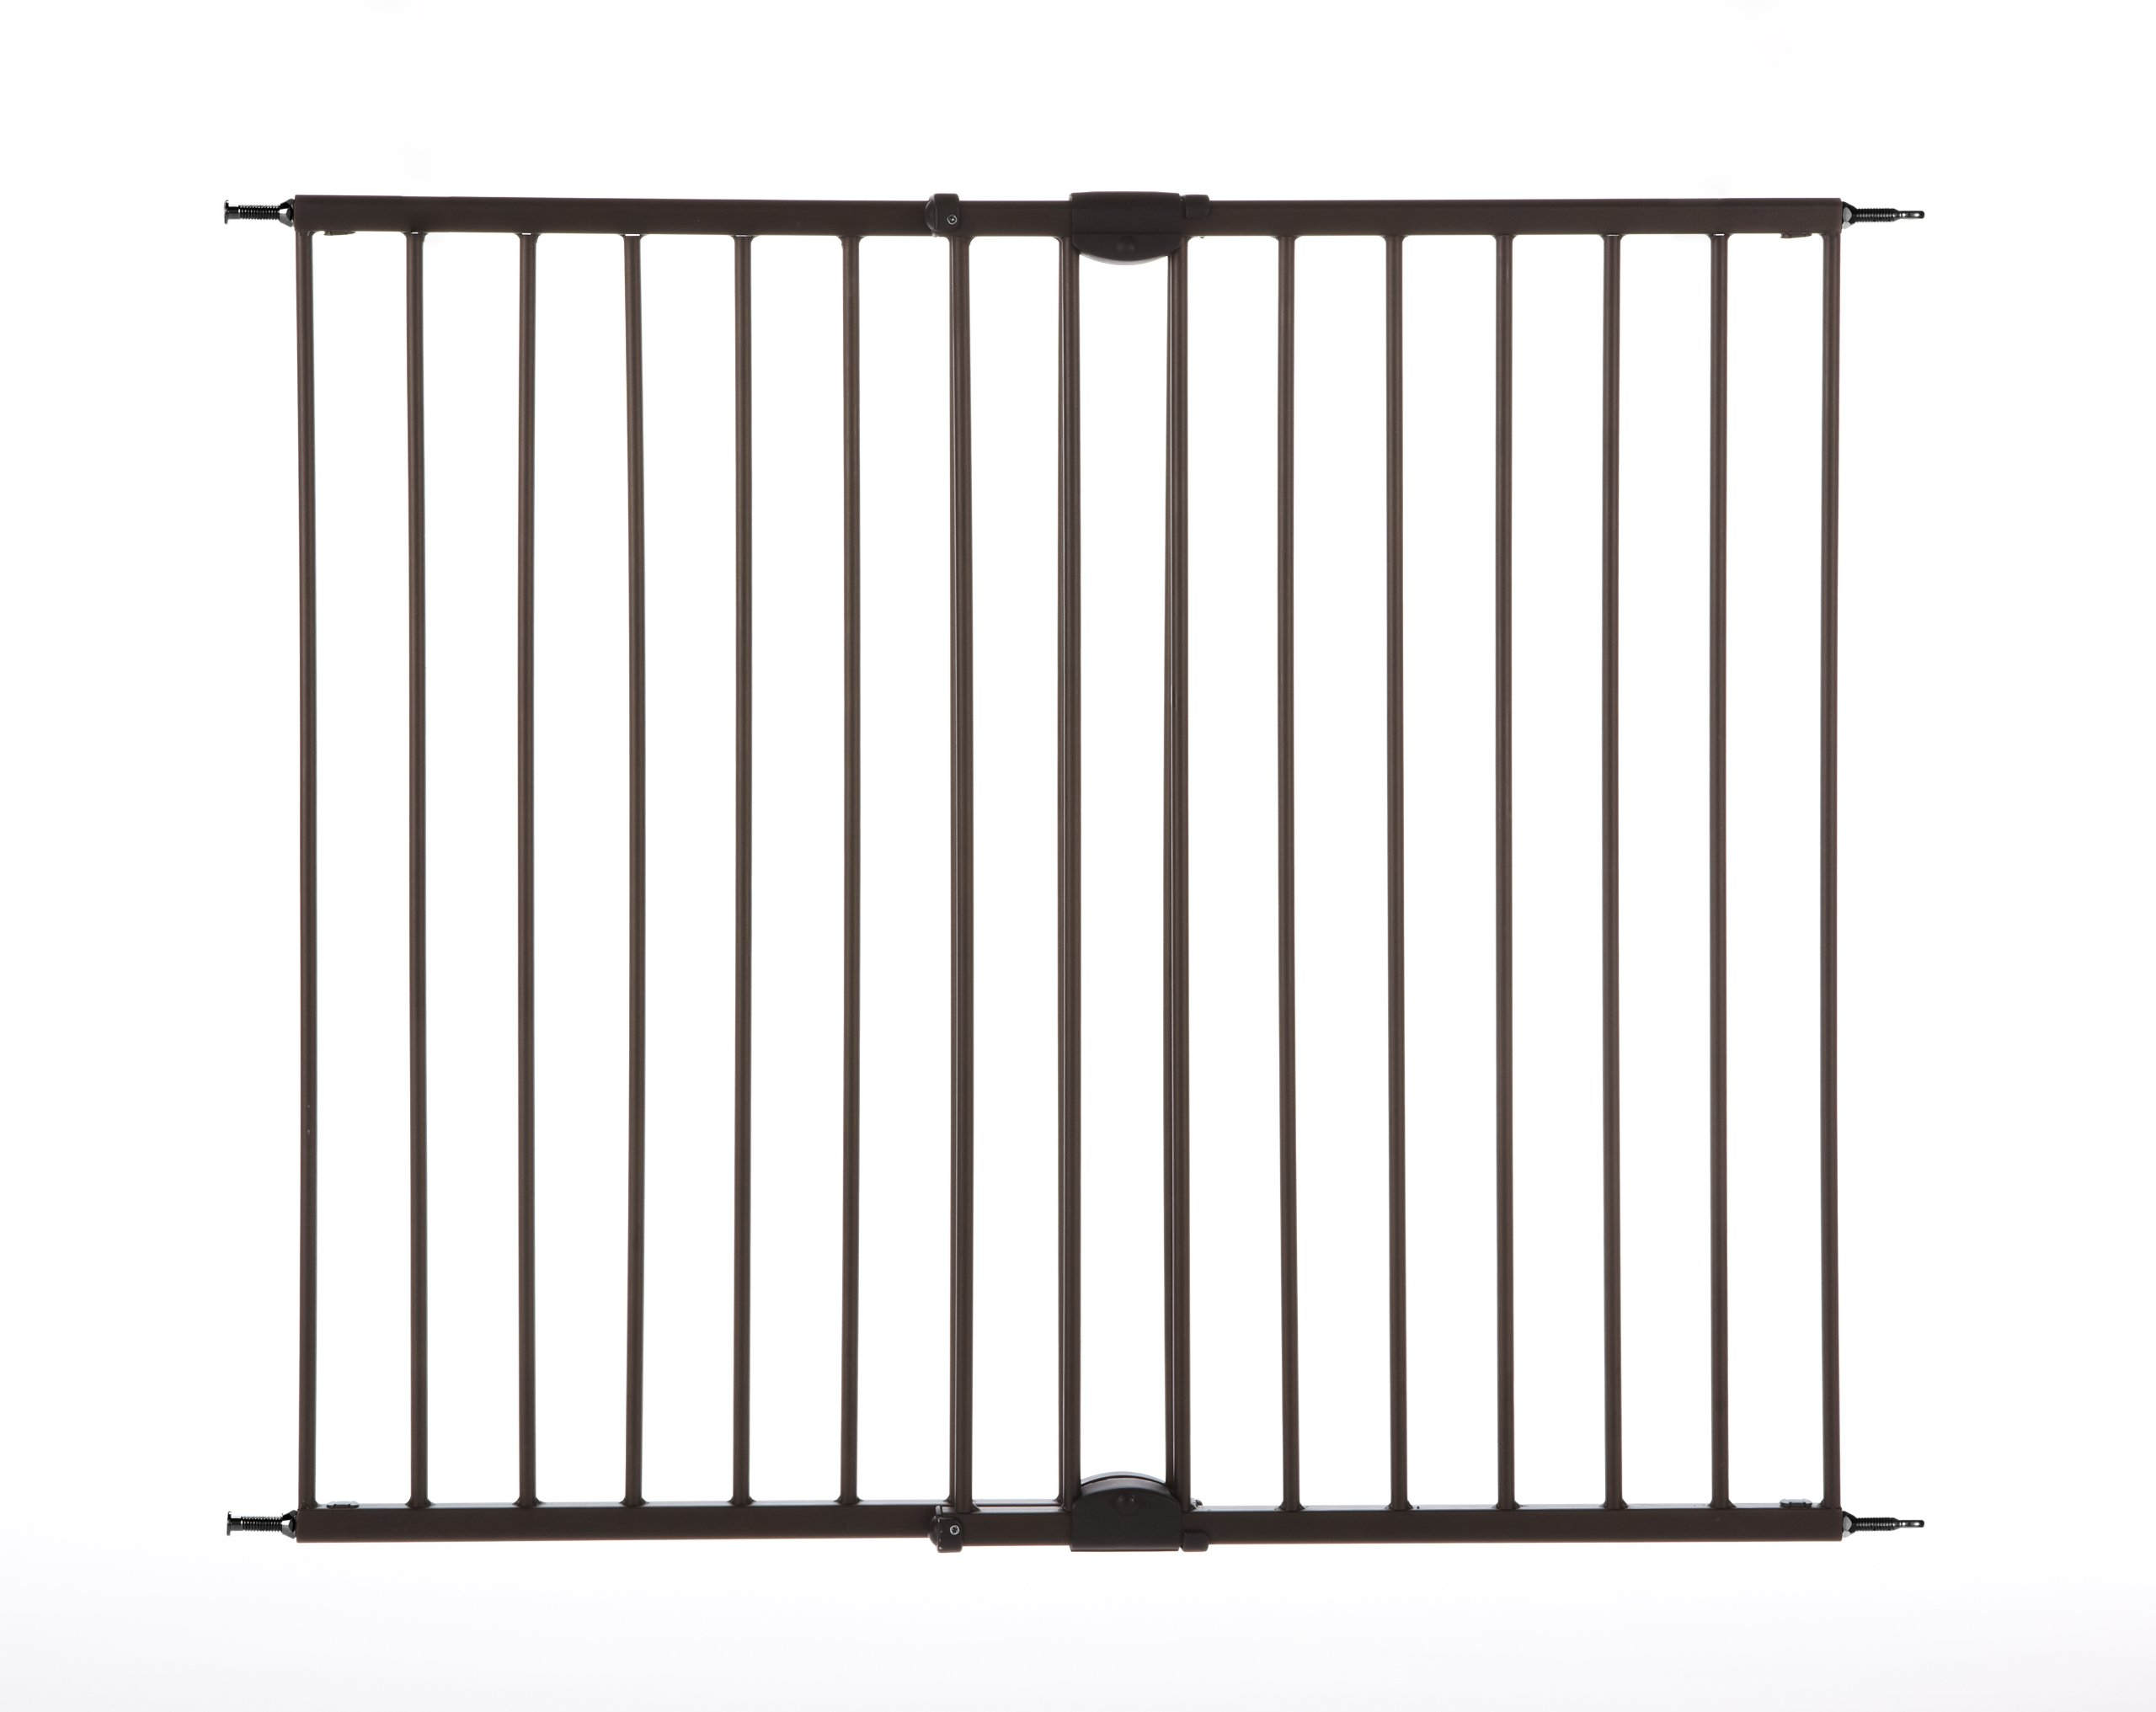 ''Easy Swing & Lock Gate'' by North States: Ideal for standard or wider stairways, swings to self-lock. Hardware mount. Fits openings 28.68'' to 47.85'' wide (31'' tall, Bronze)